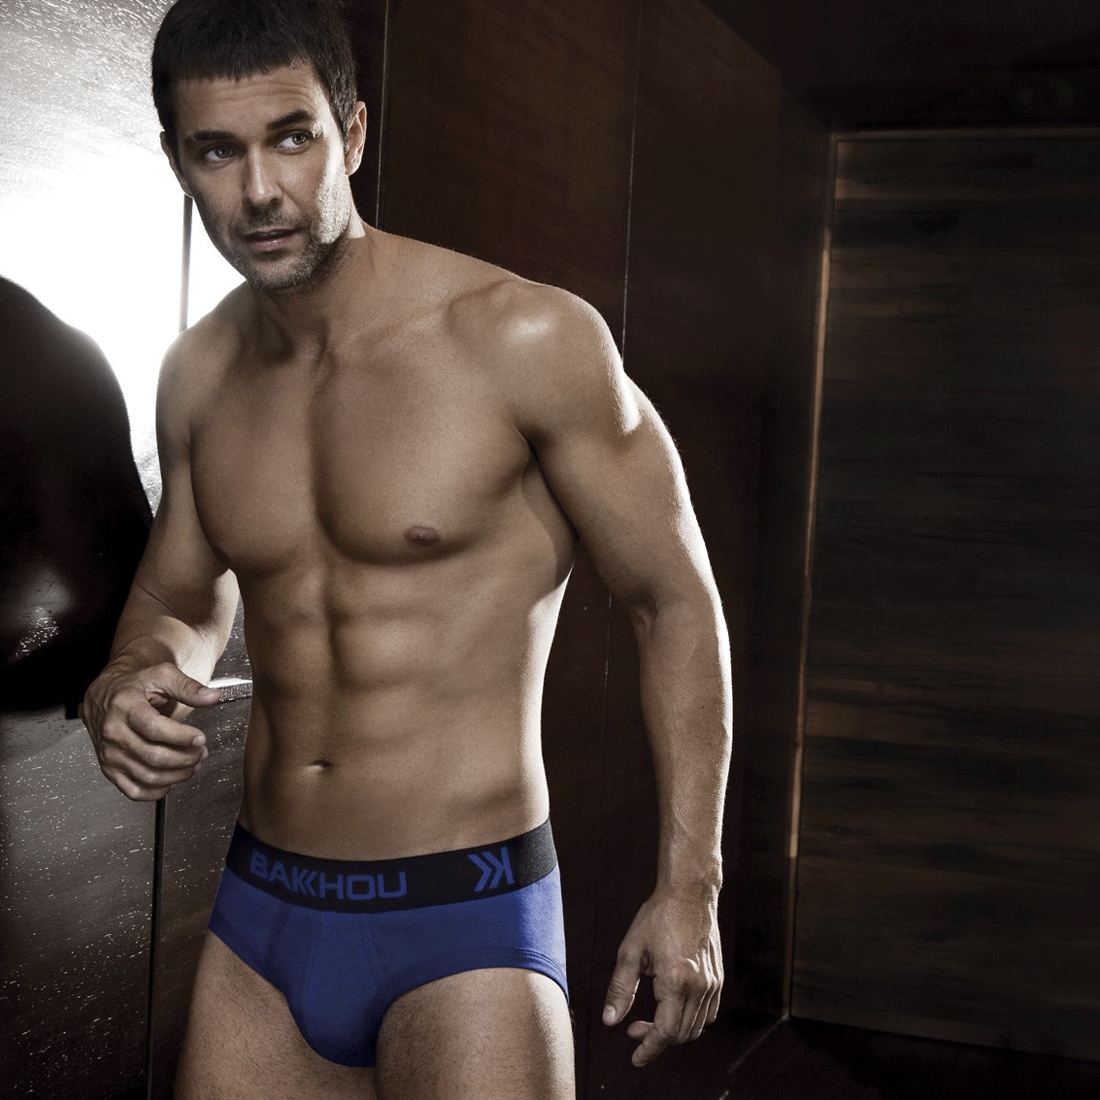 Mariano-Martinez-for-Bakhou-underwear-04